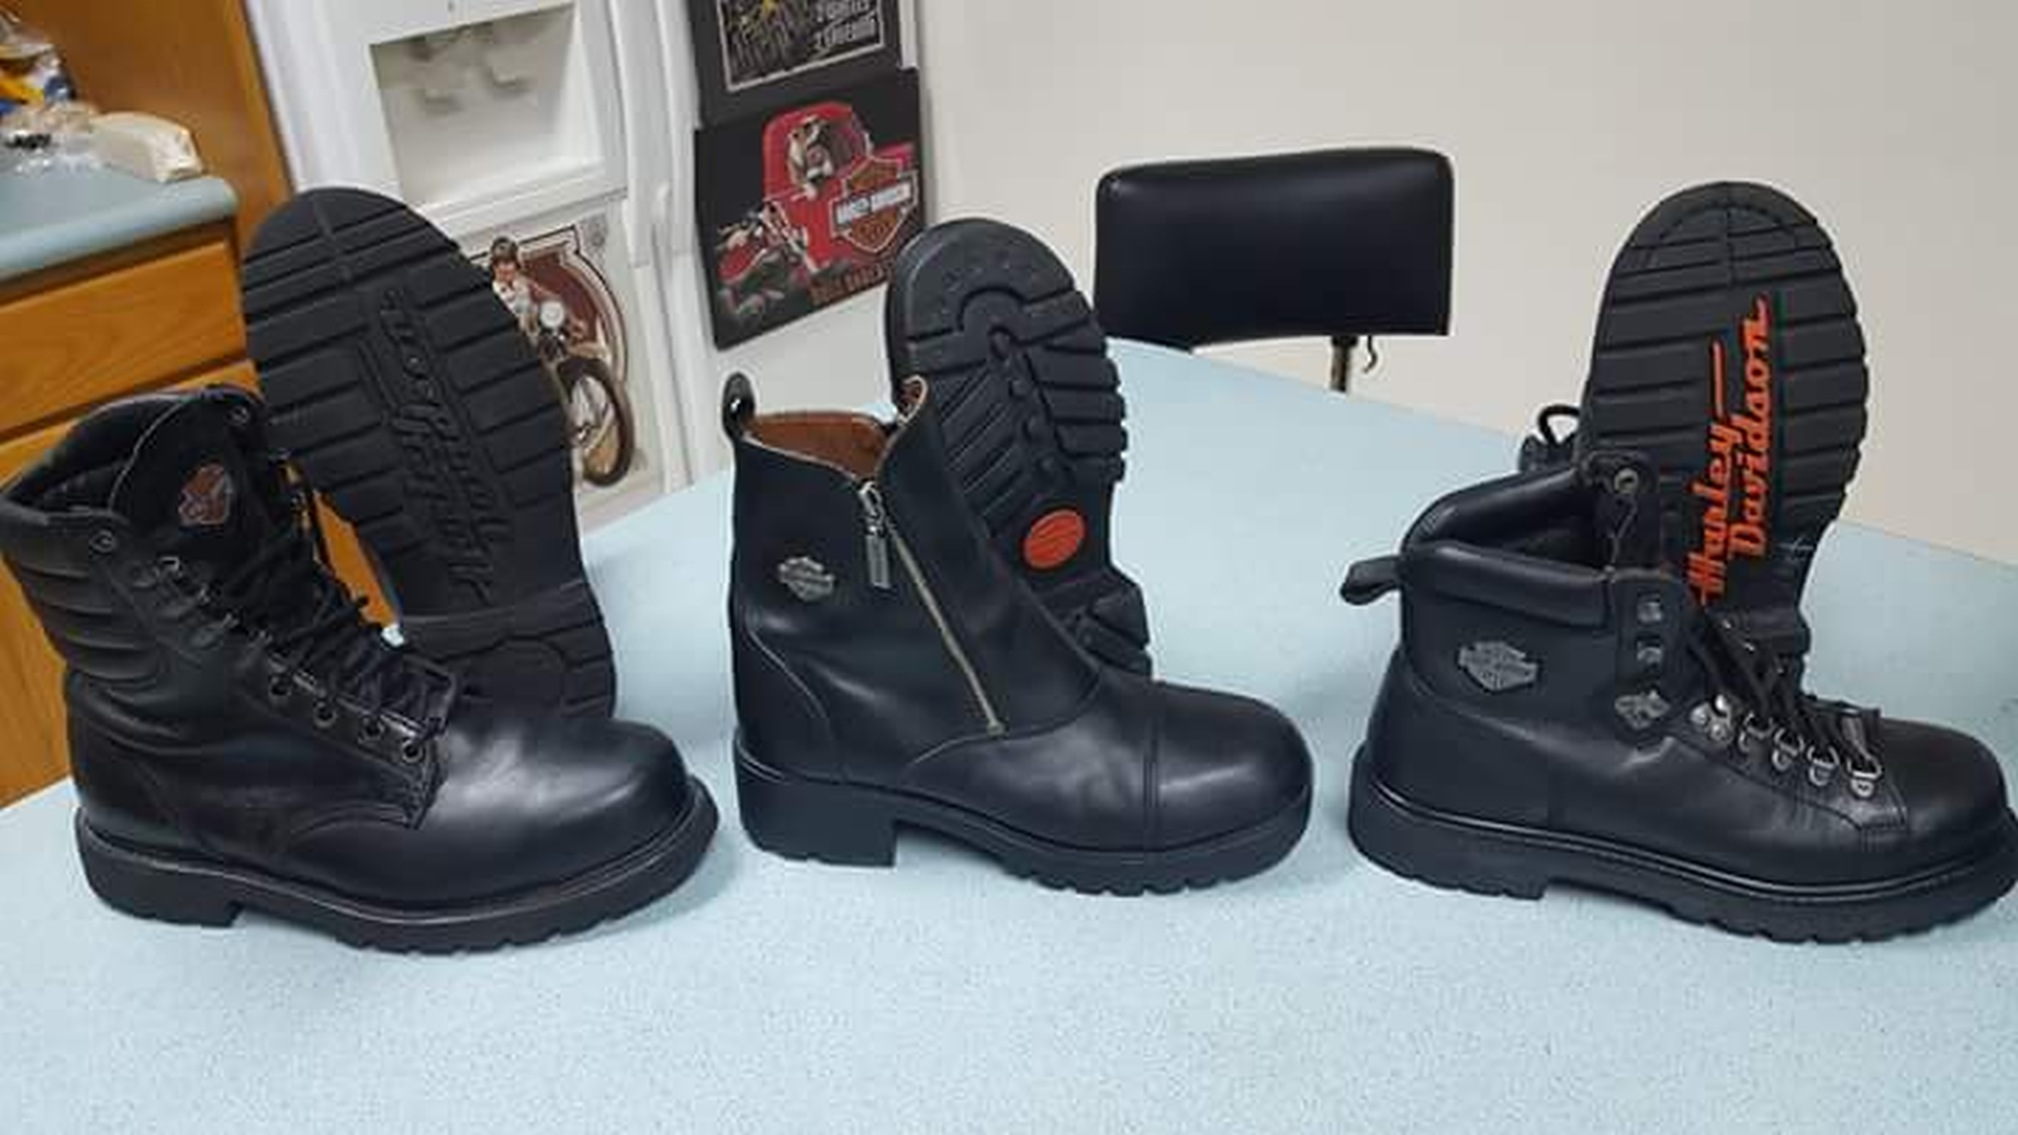 Three pairs of black leather boots pictures on a blue field. Of each pair the right boot is sitting normally while the left is propped against it's twin to show the tread. Two pairs on the ends are traditional lace-up engineer boots, the middle zip-up street boots. Emblazoned on the underside of one pair in red is the brand name.